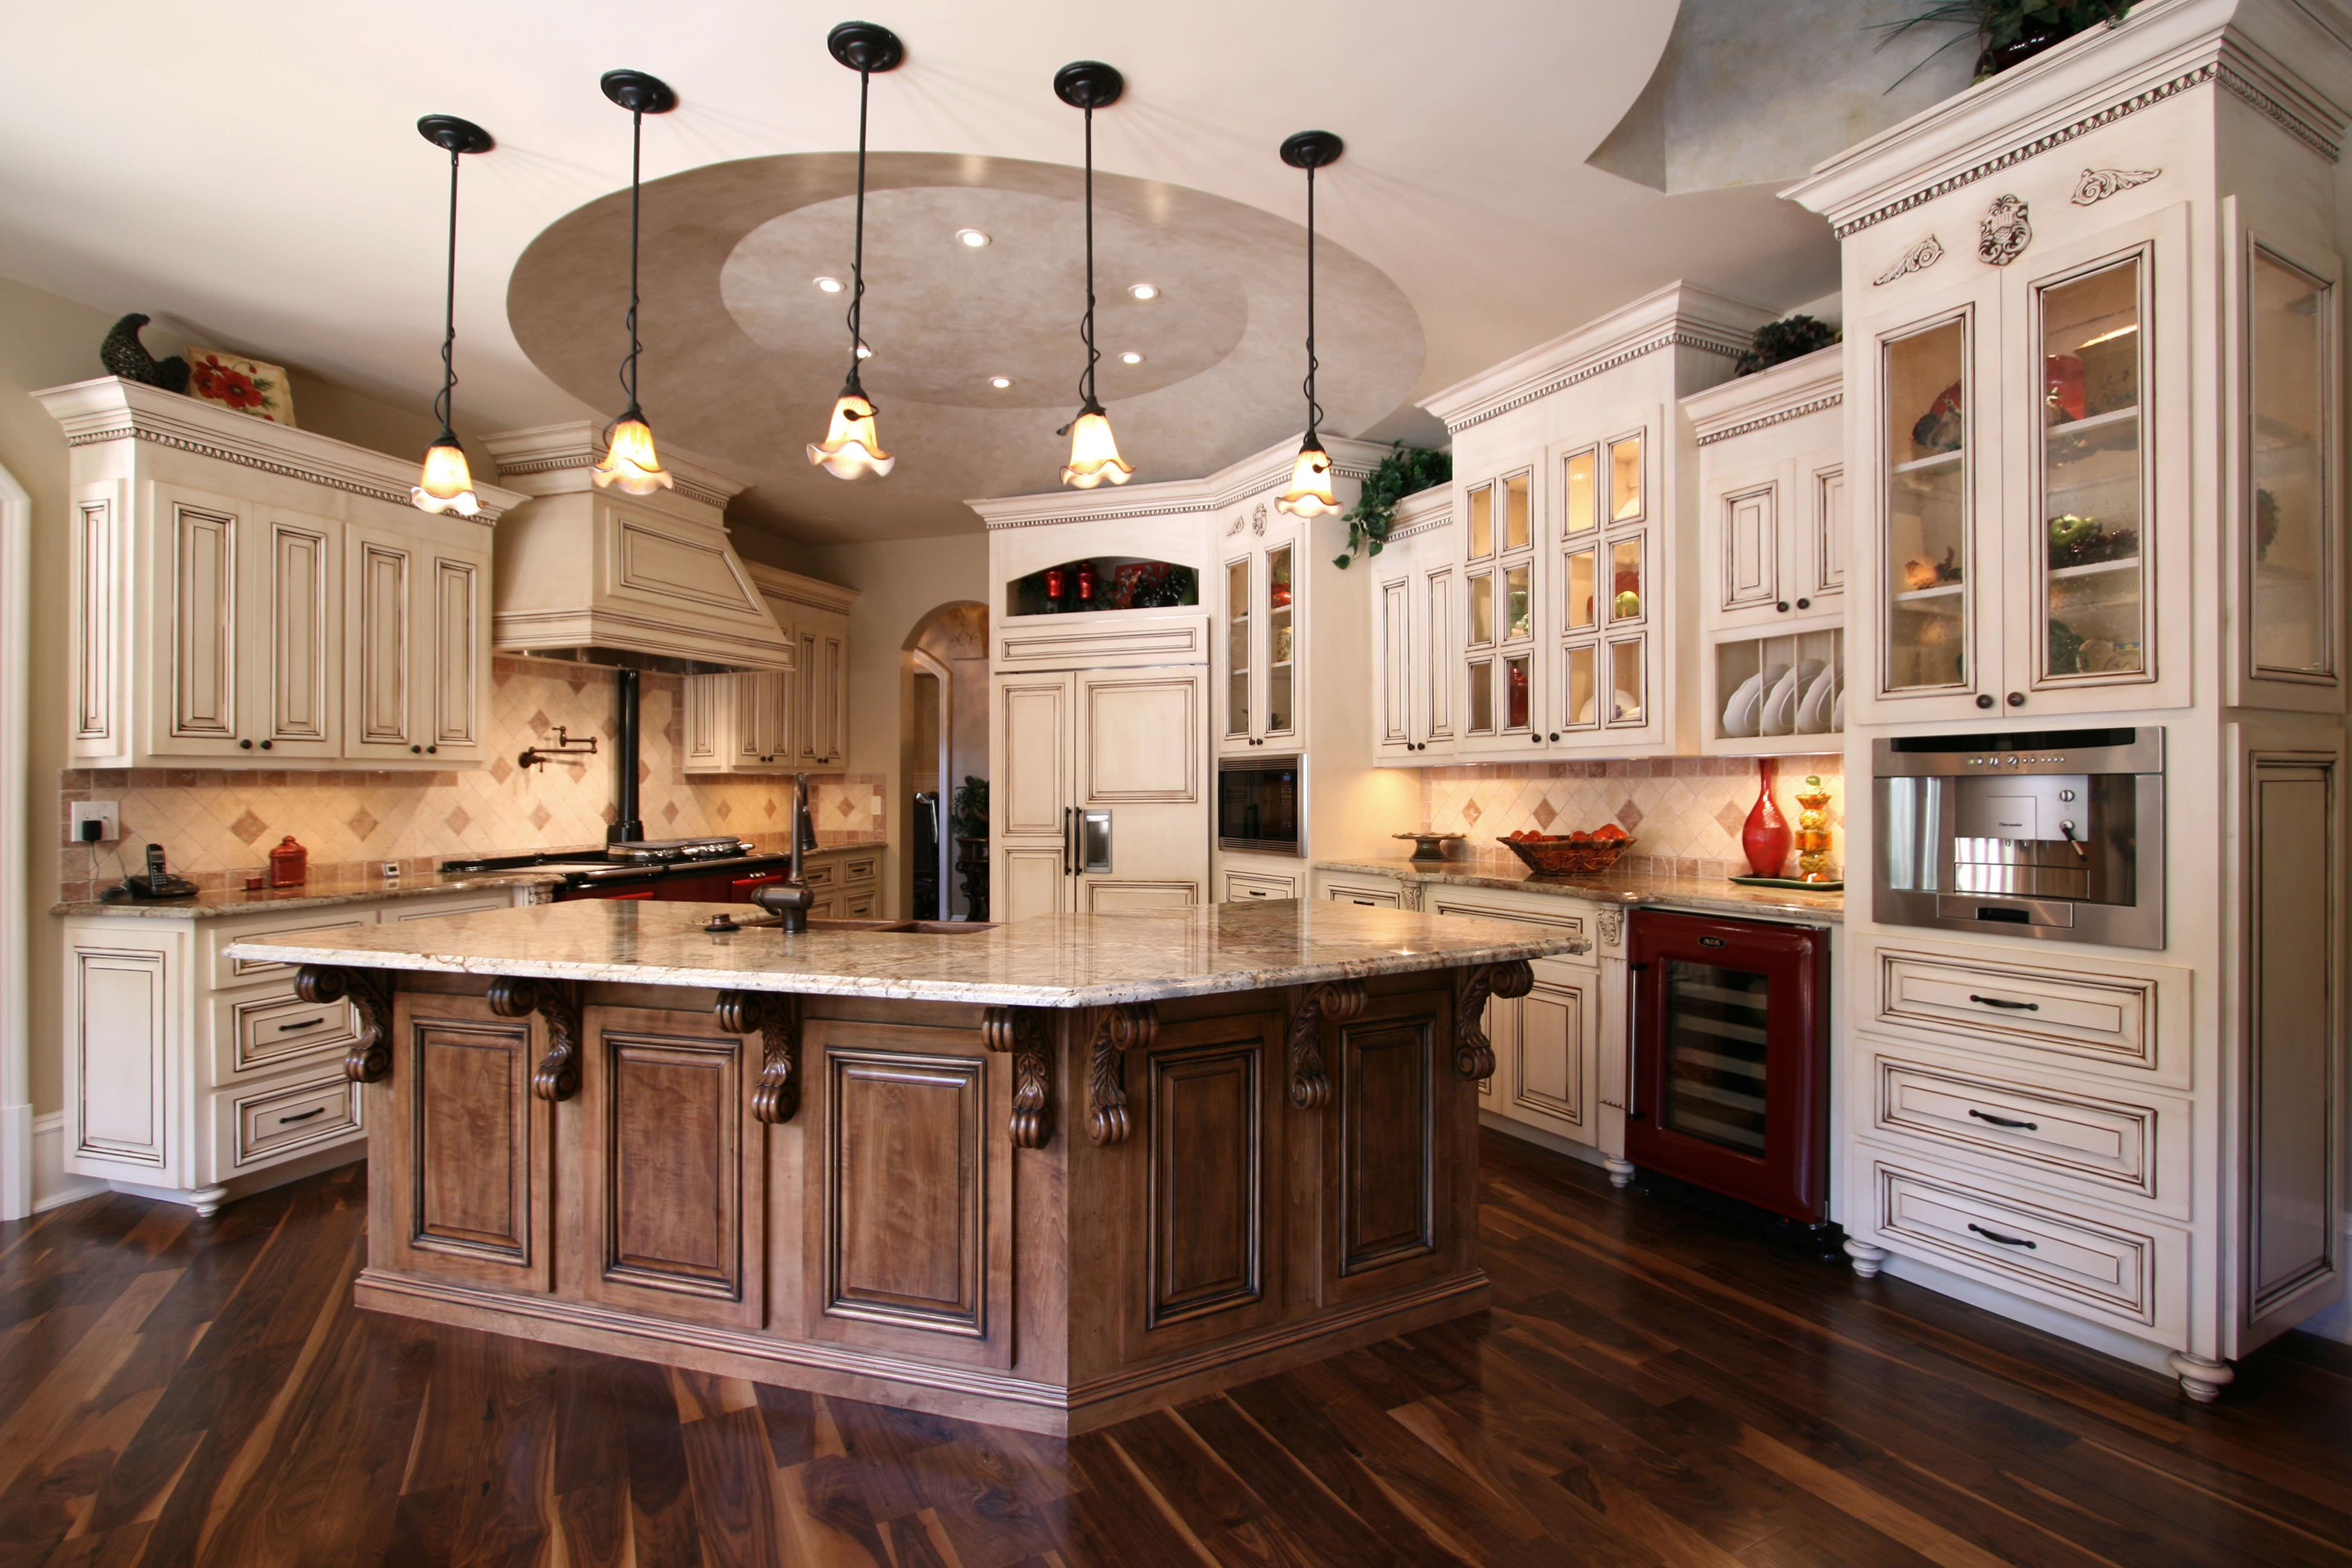 walker woodworking cabinetry traditional project 5 french country kitchen designs Walker Woodworking Cabinetry French Country Project 5 Walker Woodworking